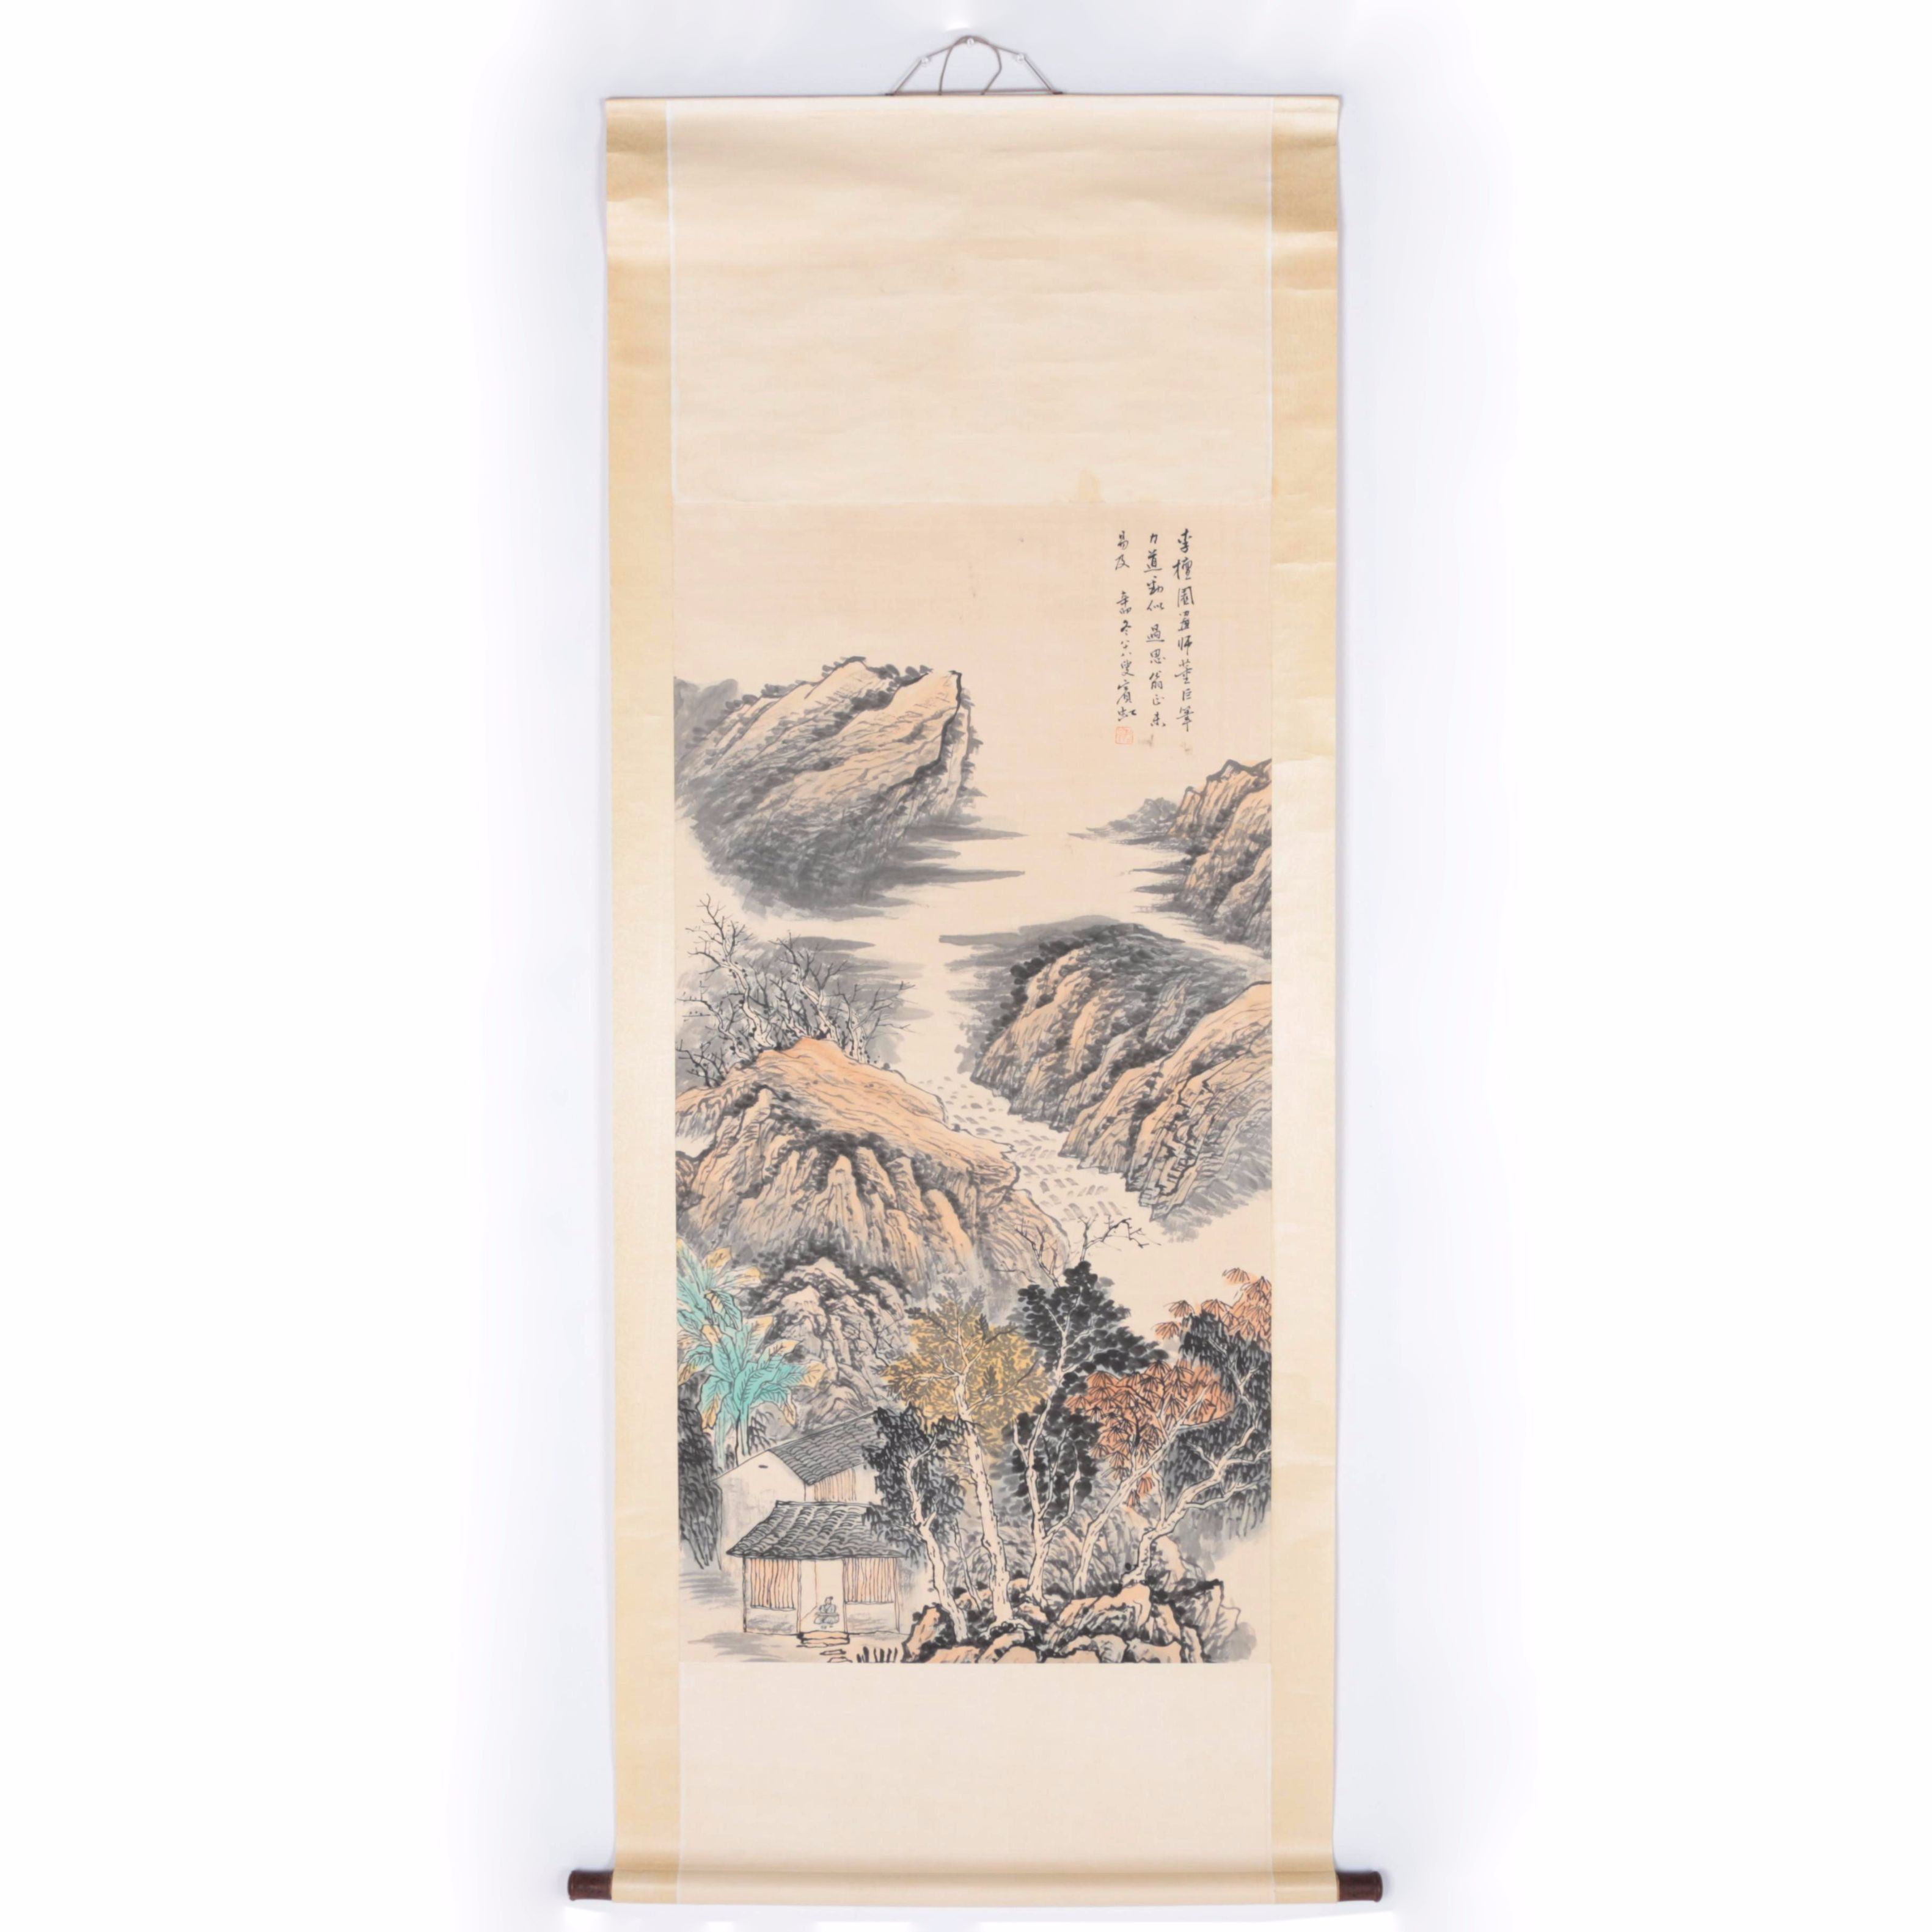 East Asian Style Ink and Watercolor Painting of House in Rocky Landscape on Hanging Scroll